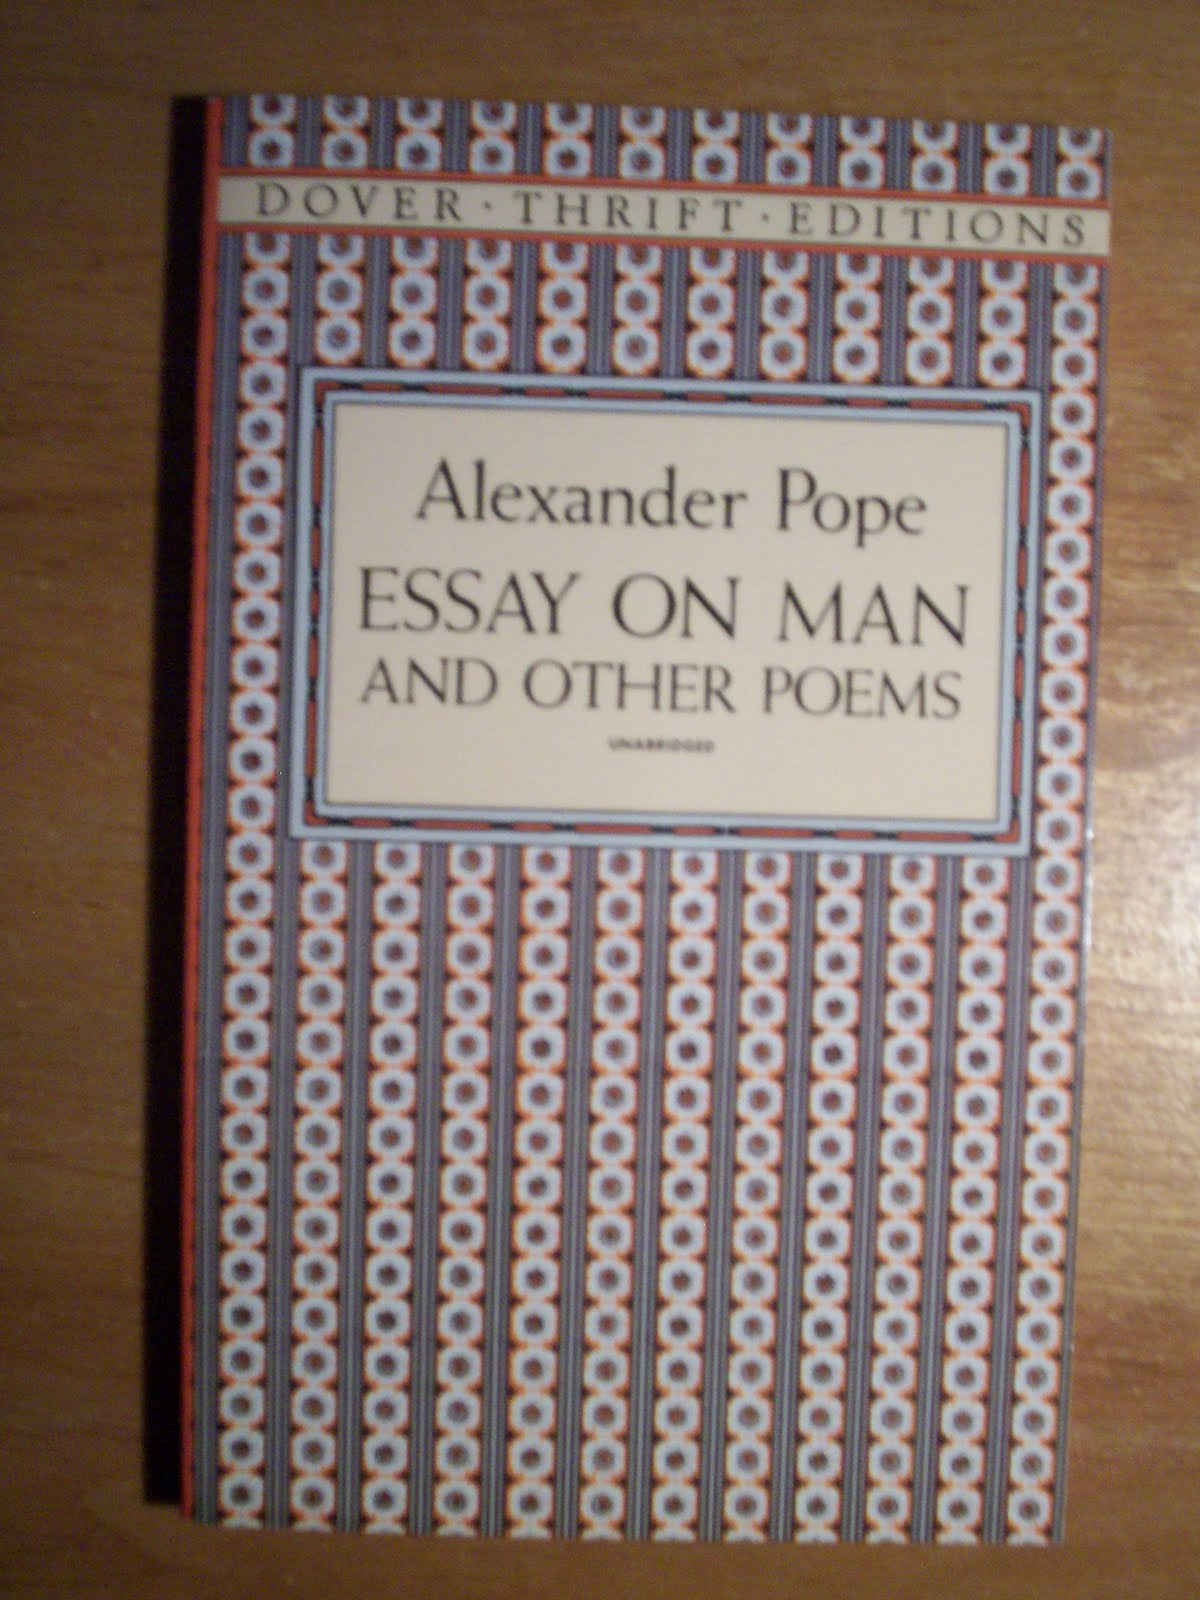 an essay on man alexander pope sparknotes  an essay on man alexander pope sparknotes